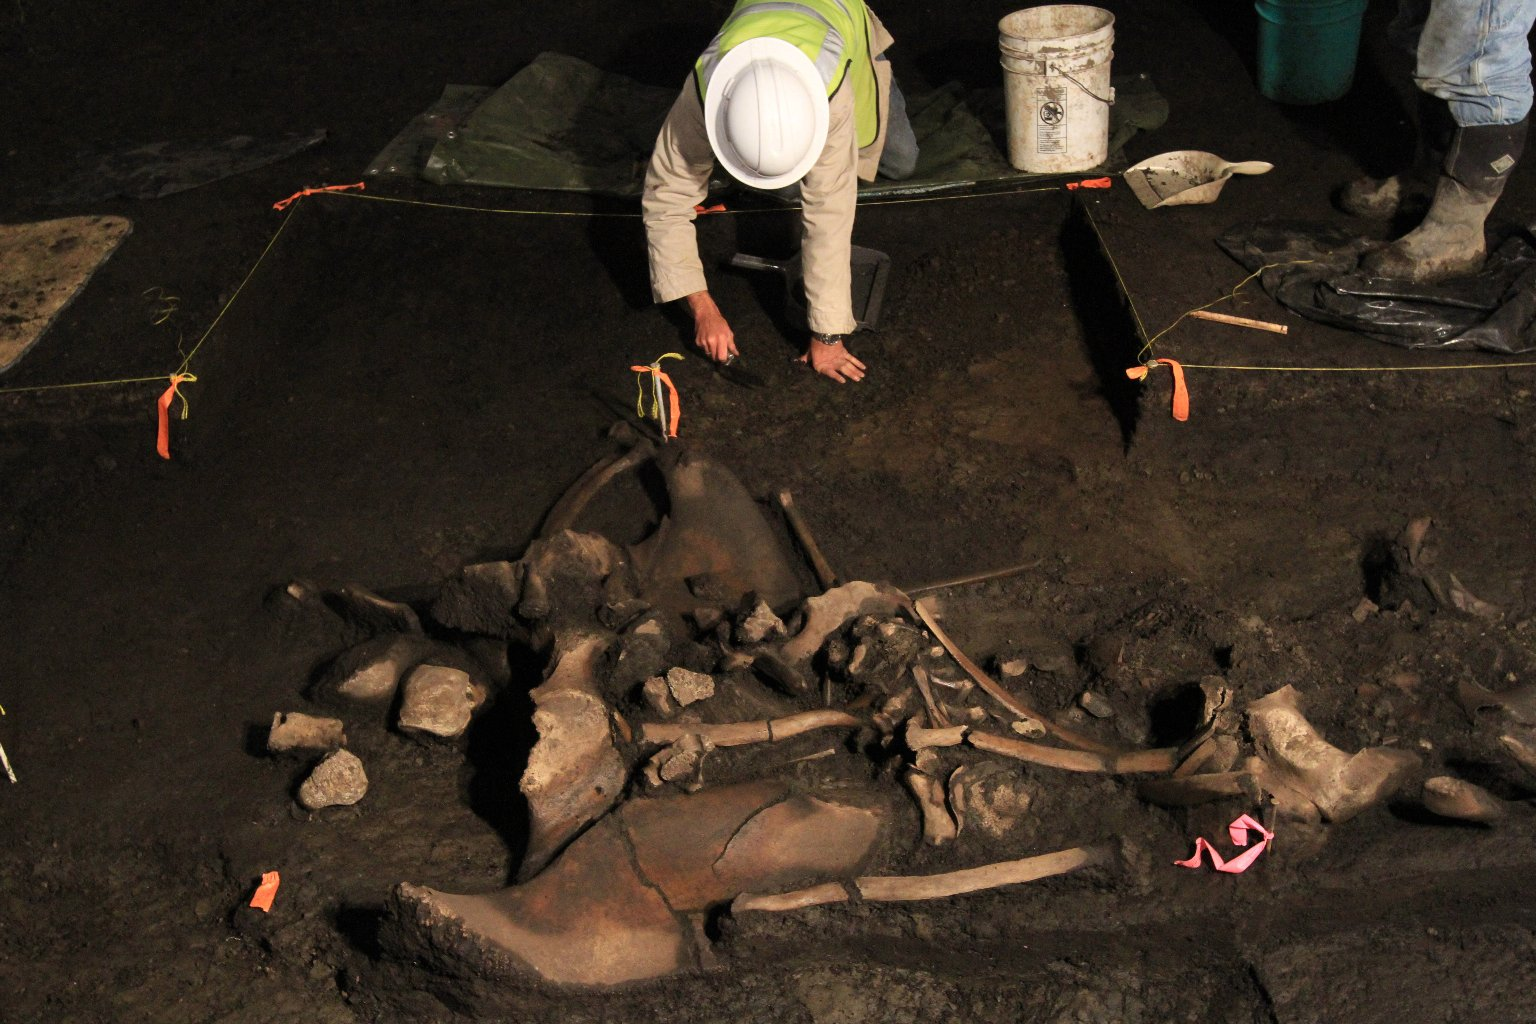 Snowmastodon Excavation, Juvenile mammoth